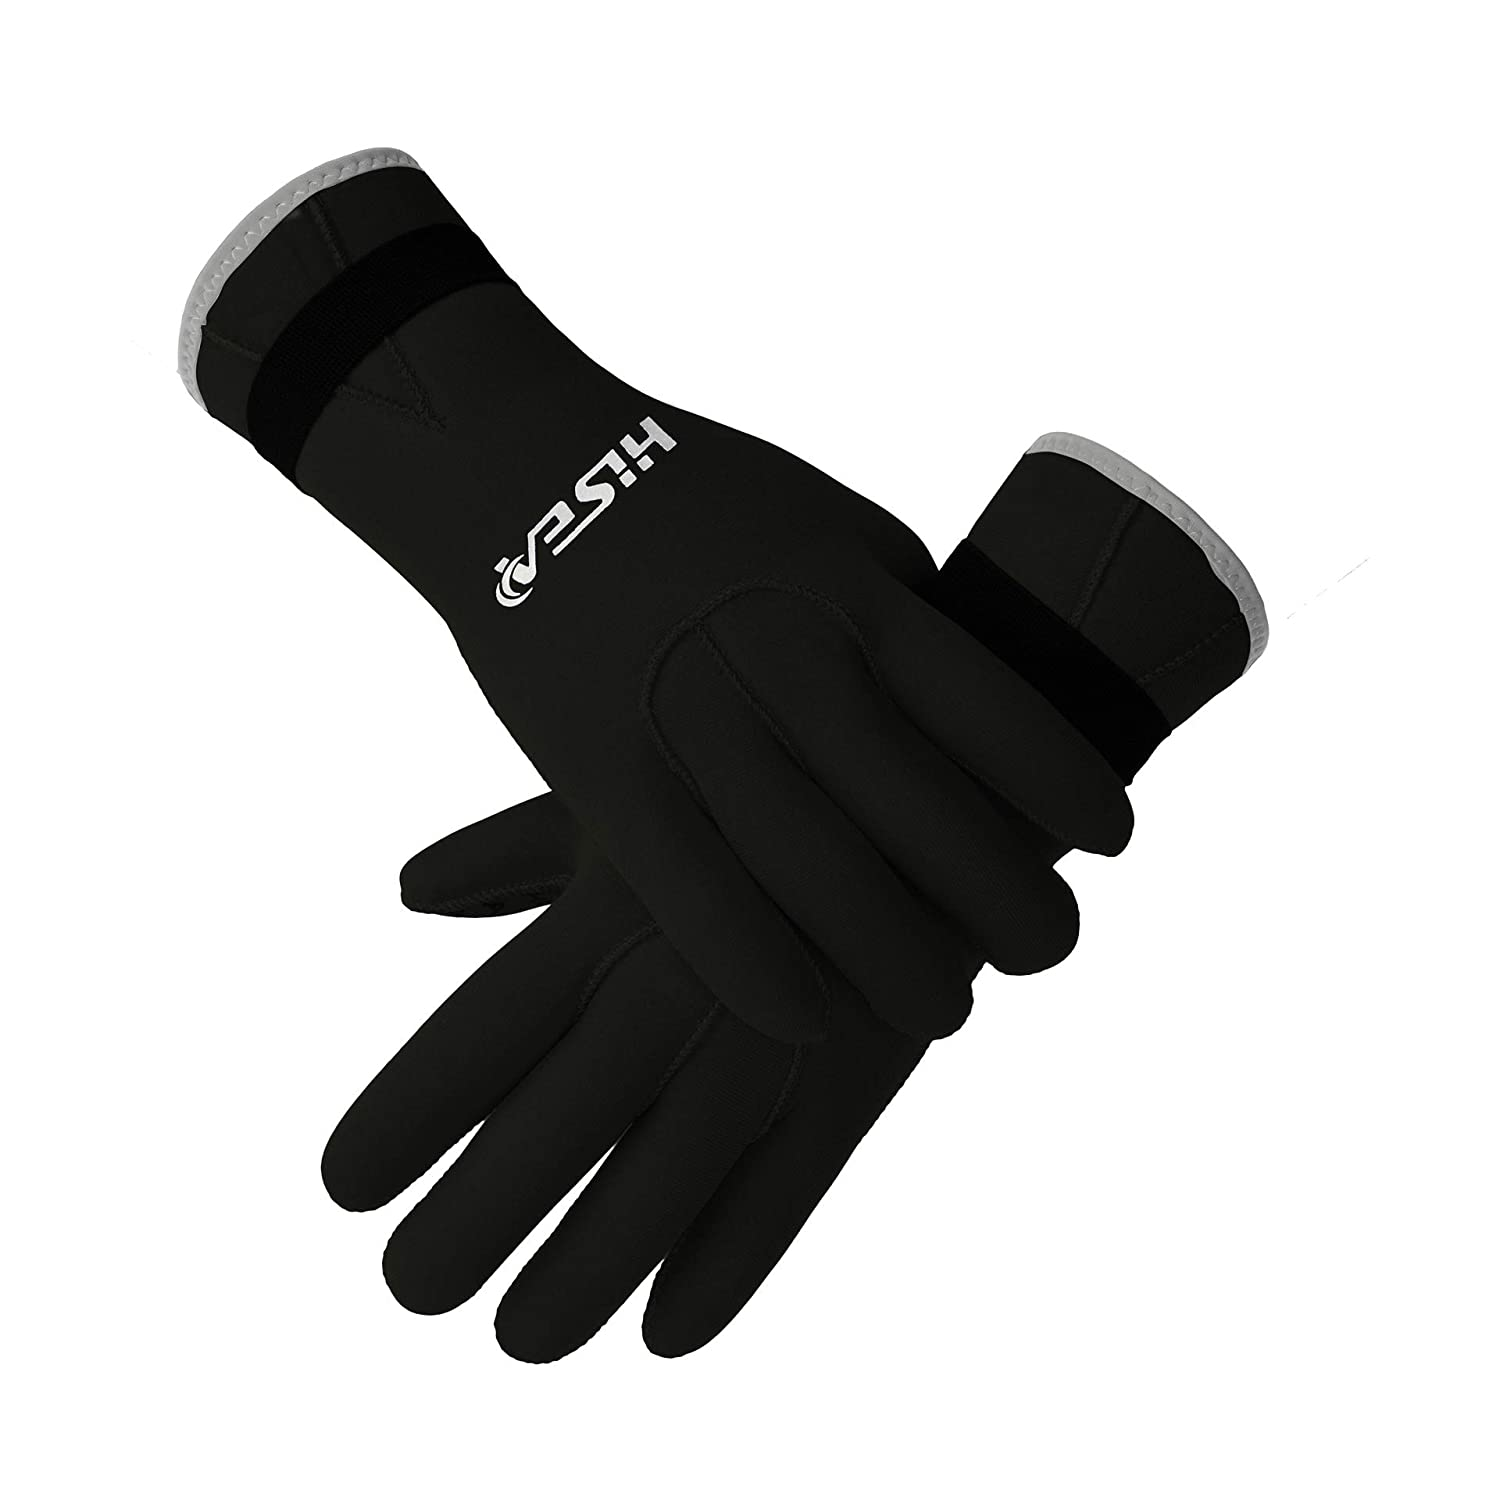 Scubadonkey Neoprene Diving Gloves Wetsuit Scuba Gloves 3MM for Men Women Kids Outlet for Kayaking Surfing Sailing Snorkeling Swimming Canoeing Fishing Diving and Other Water Sports